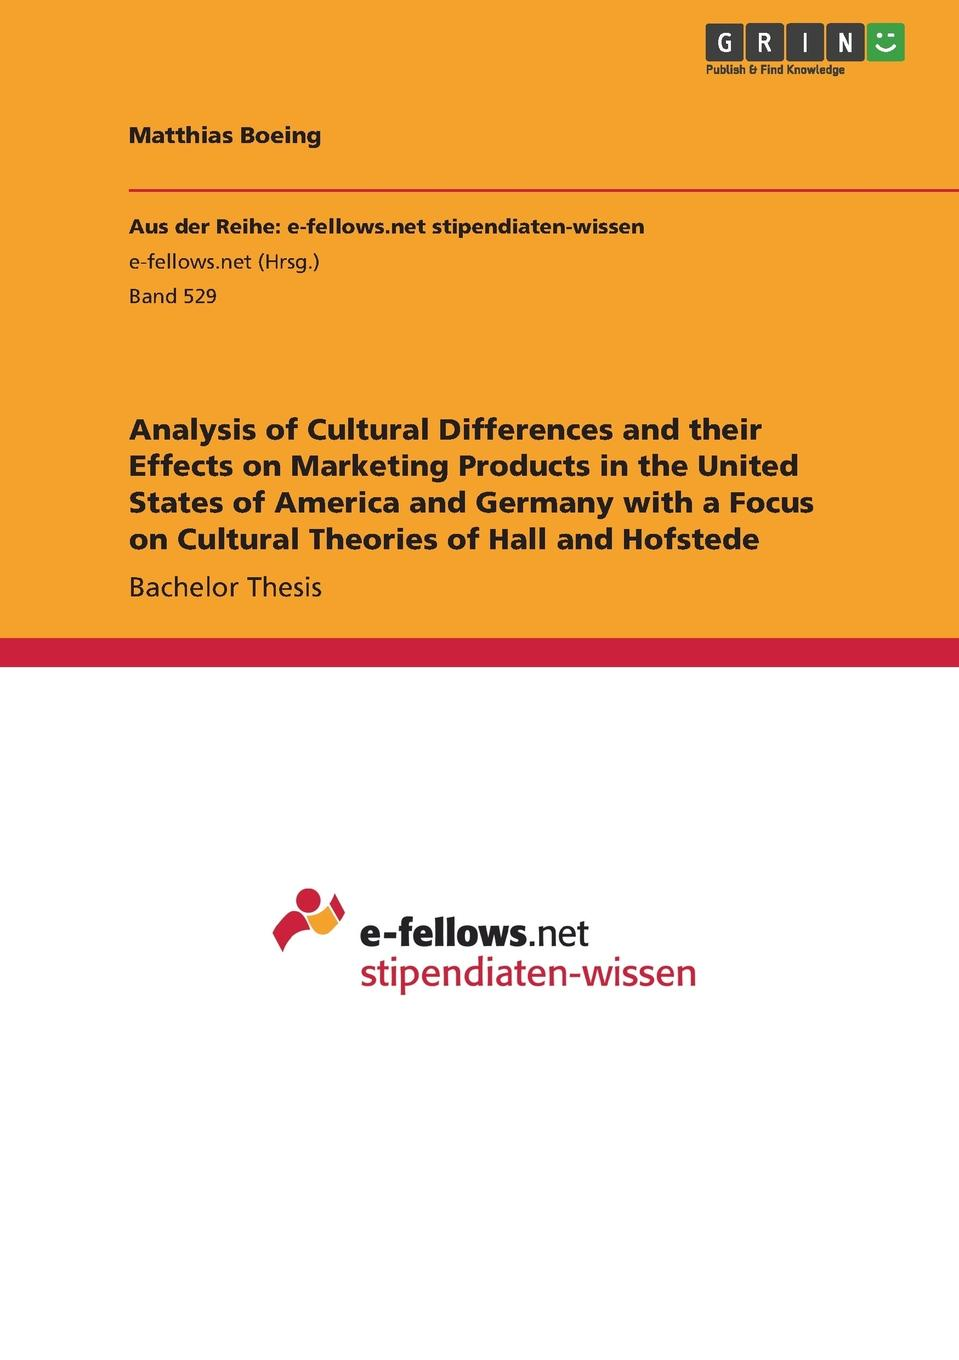 Matthias Boeing Analysis of Cultural Differences and their Effects on Marketing Products in the United States of America and Germany with a Focus on Cultural Theories of Hall and Hofstede lennart reinhold job motivation and culture a cross cultural comparison of germany and the united states